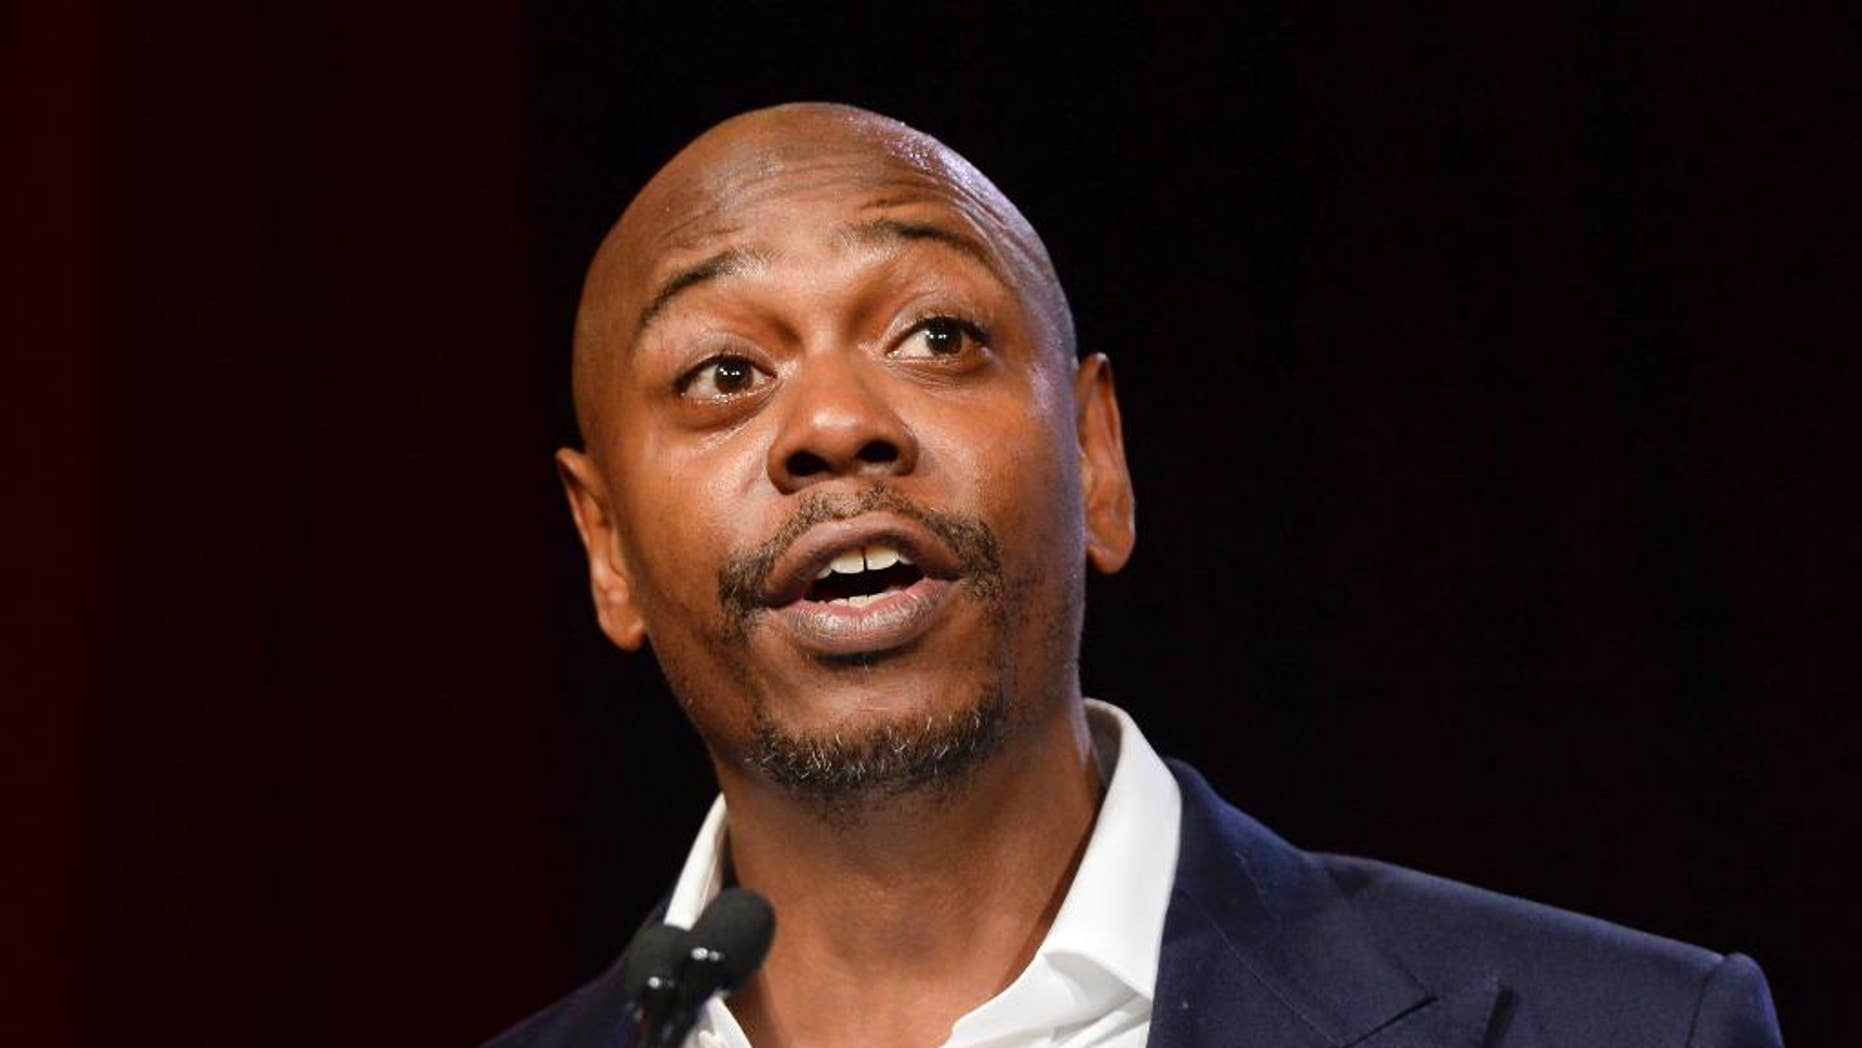 """FILE - In this July 18, 2015 file photo, comedian Dave Chappelle speaks at the RUSH Philanthropic Arts Foundation's Art for Life Benefit in New York. Chappelle is set to host NBC's """"Saturday Night Live"""" on Nov. 12, marking his debut appearance on the show. He will be joined by hip-hop group A Tribe Called Quest. (Photo by Scott Roth/Invision/AP, File)"""